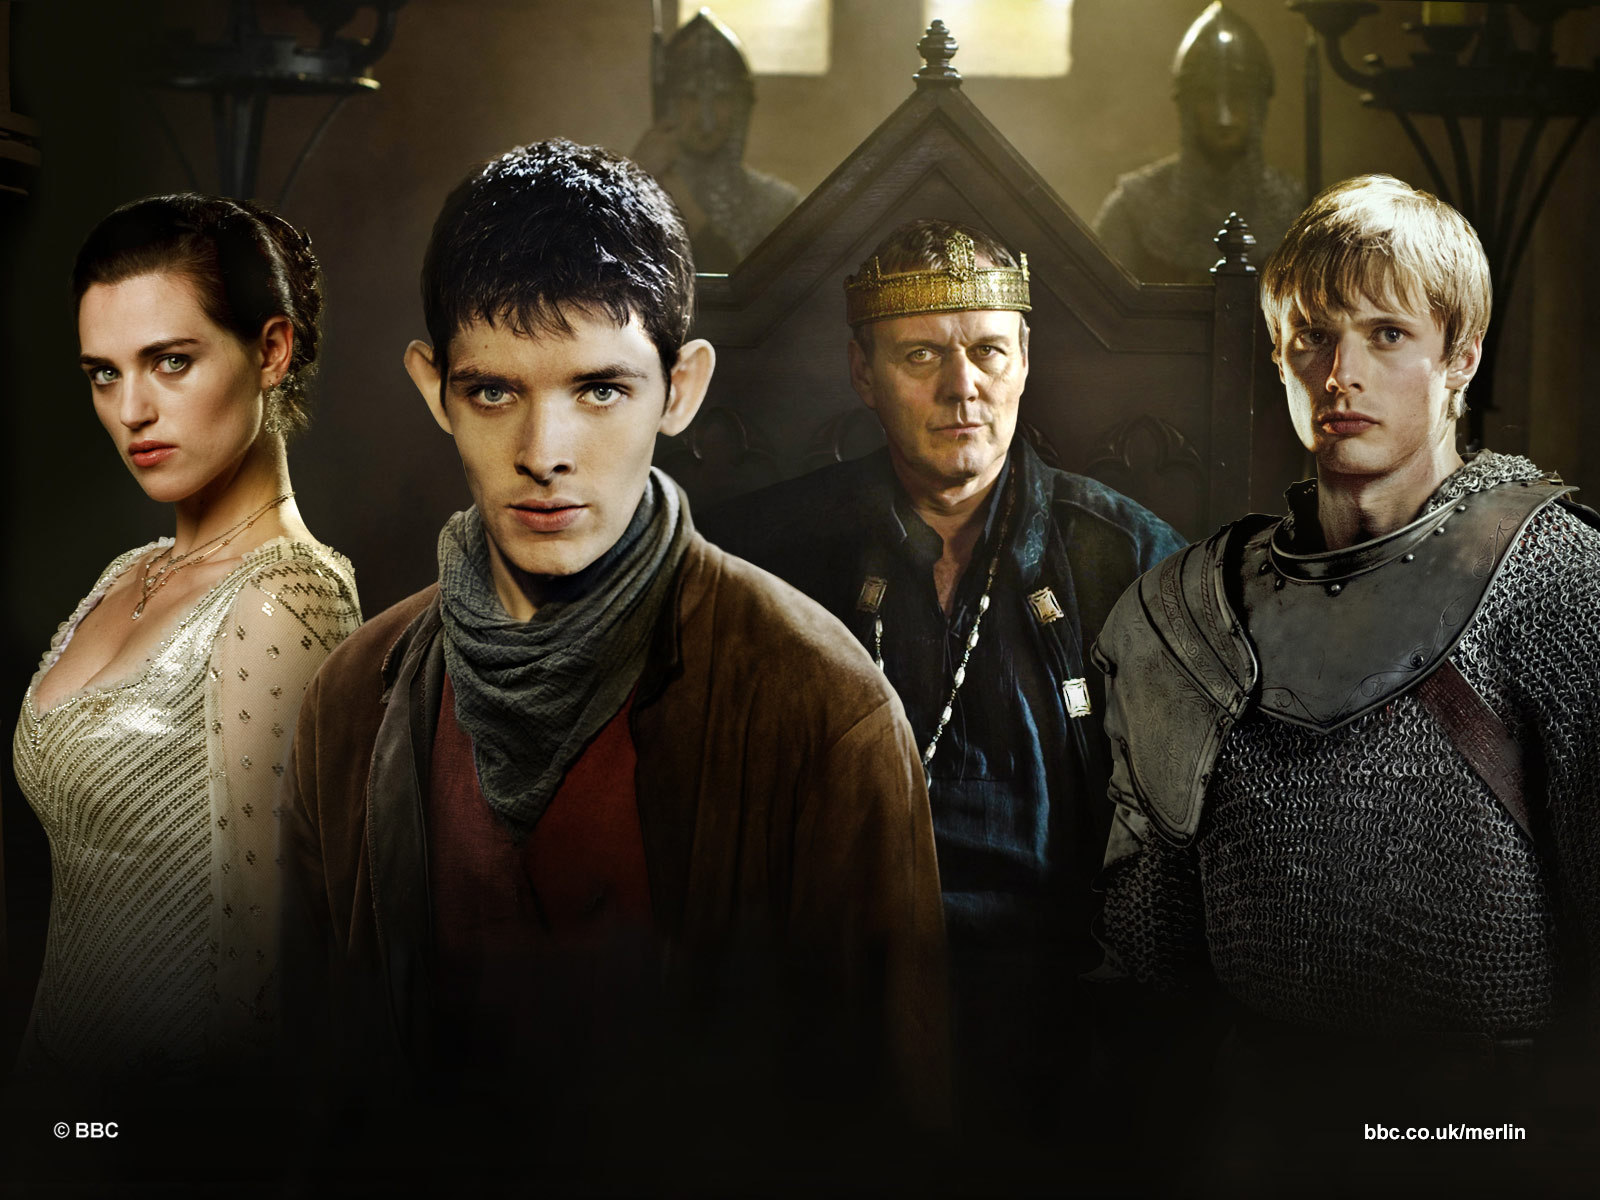 Morgana, Merlin, Uther & Arthur - Merlin on BBC Wallpaper